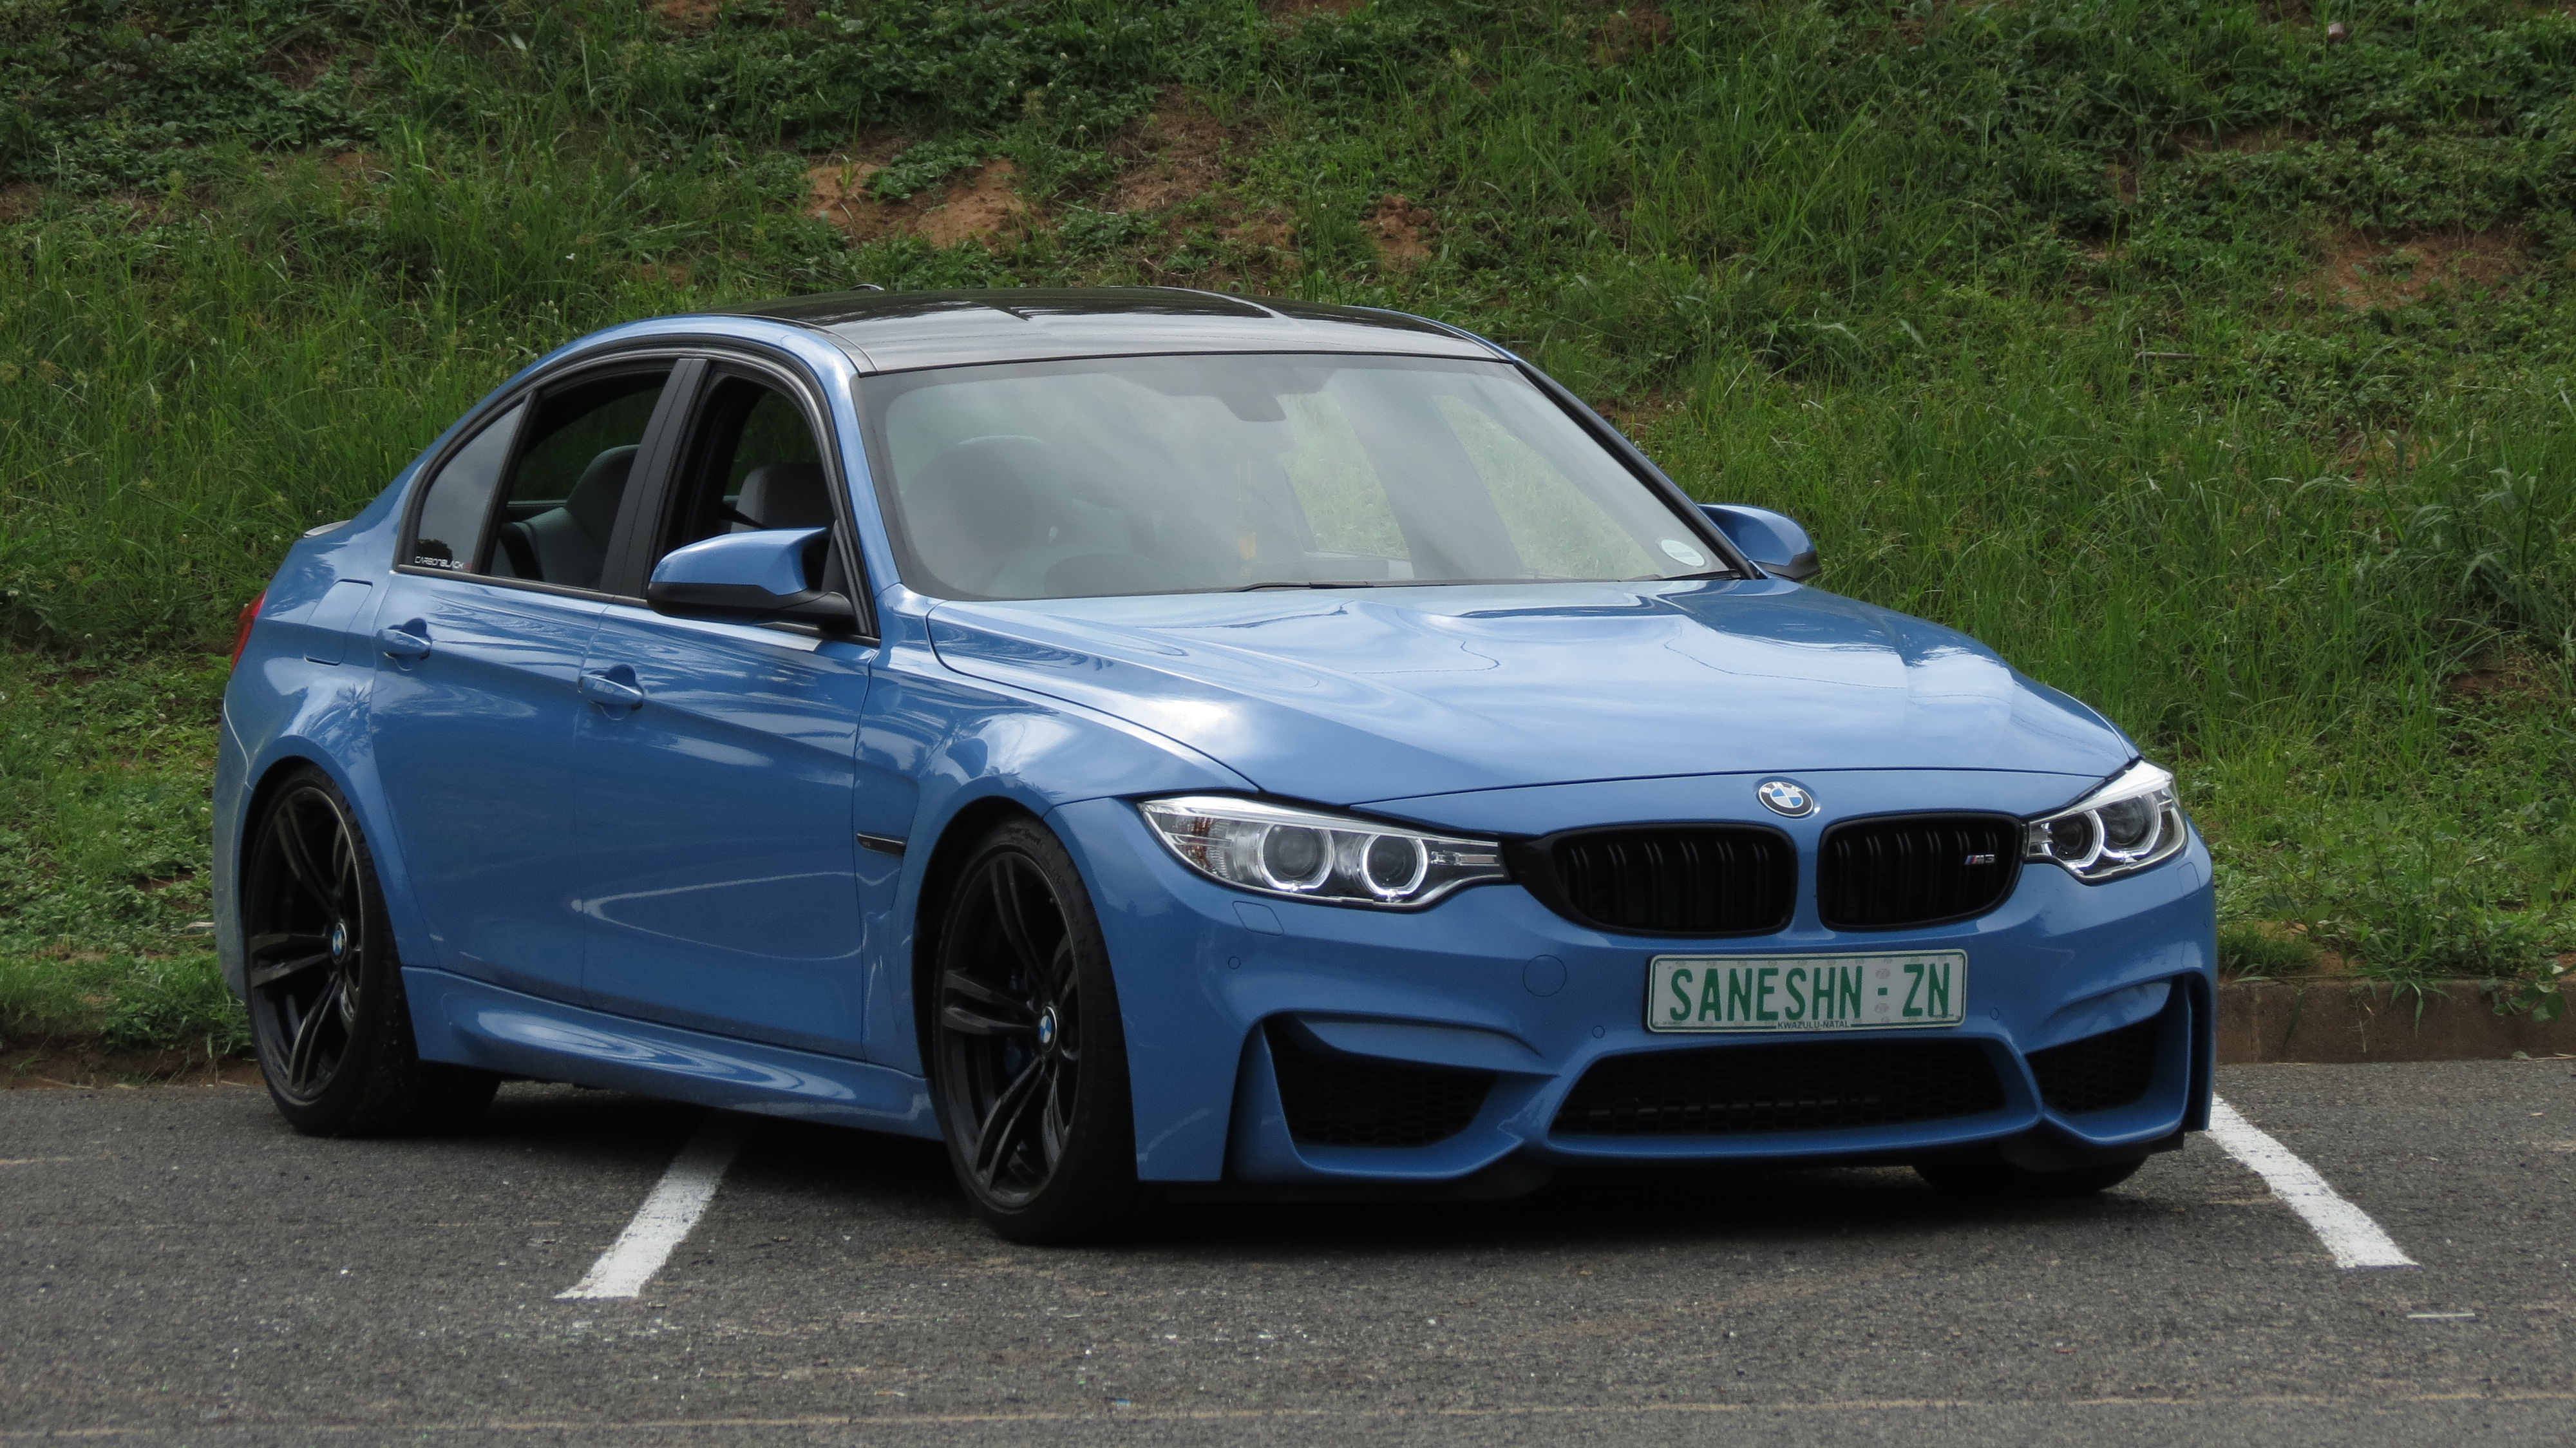 Bmw Articles Reviews Galleries And Events In South Africa